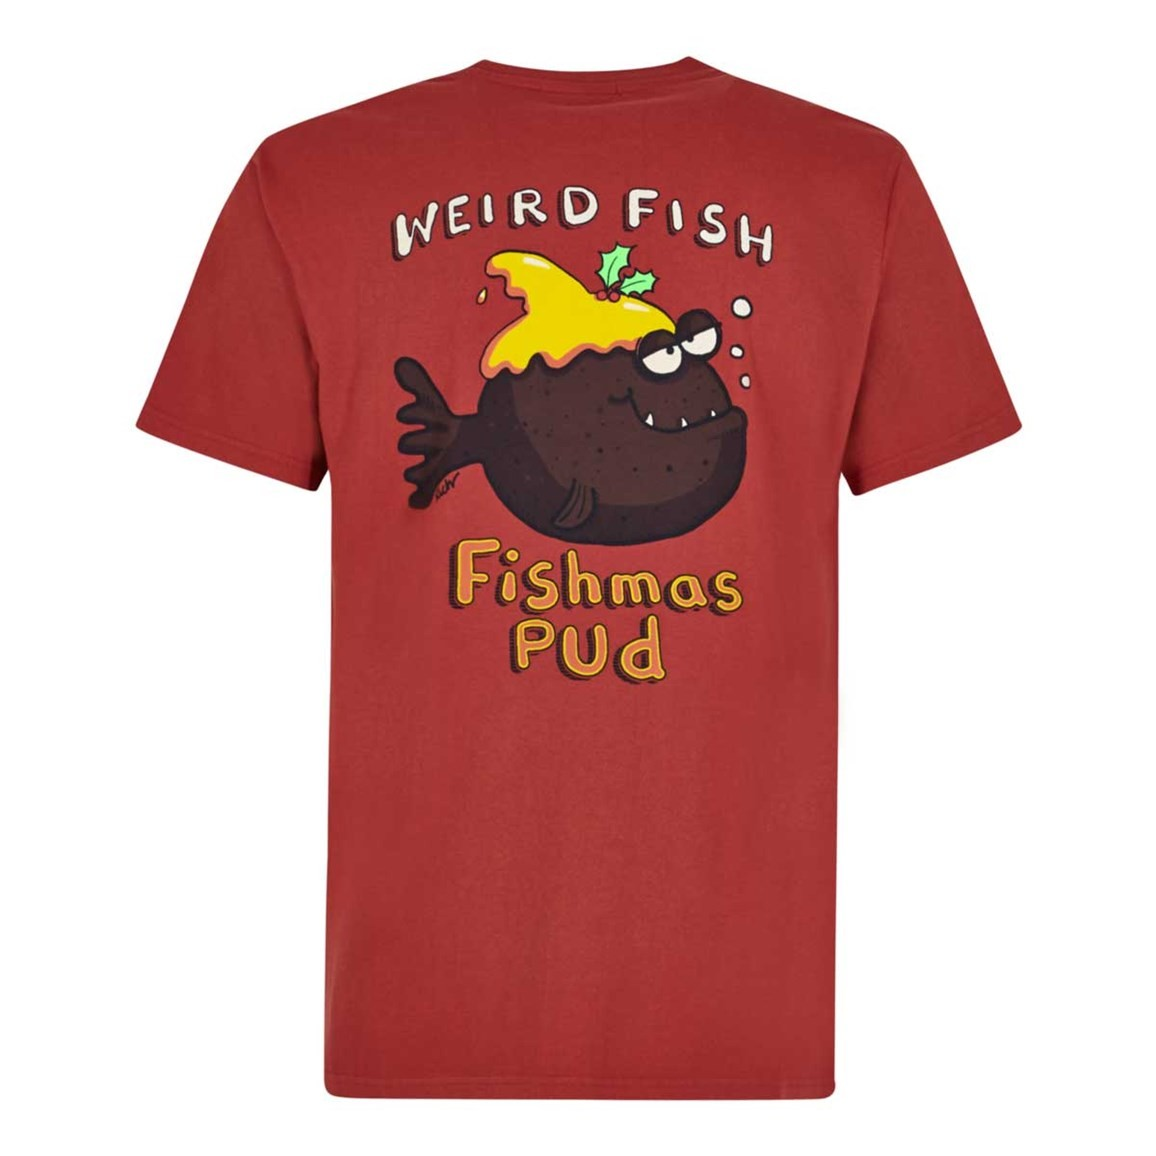 Weird Fish Fishmas Pud Artist T-Shirt Ketchup Red